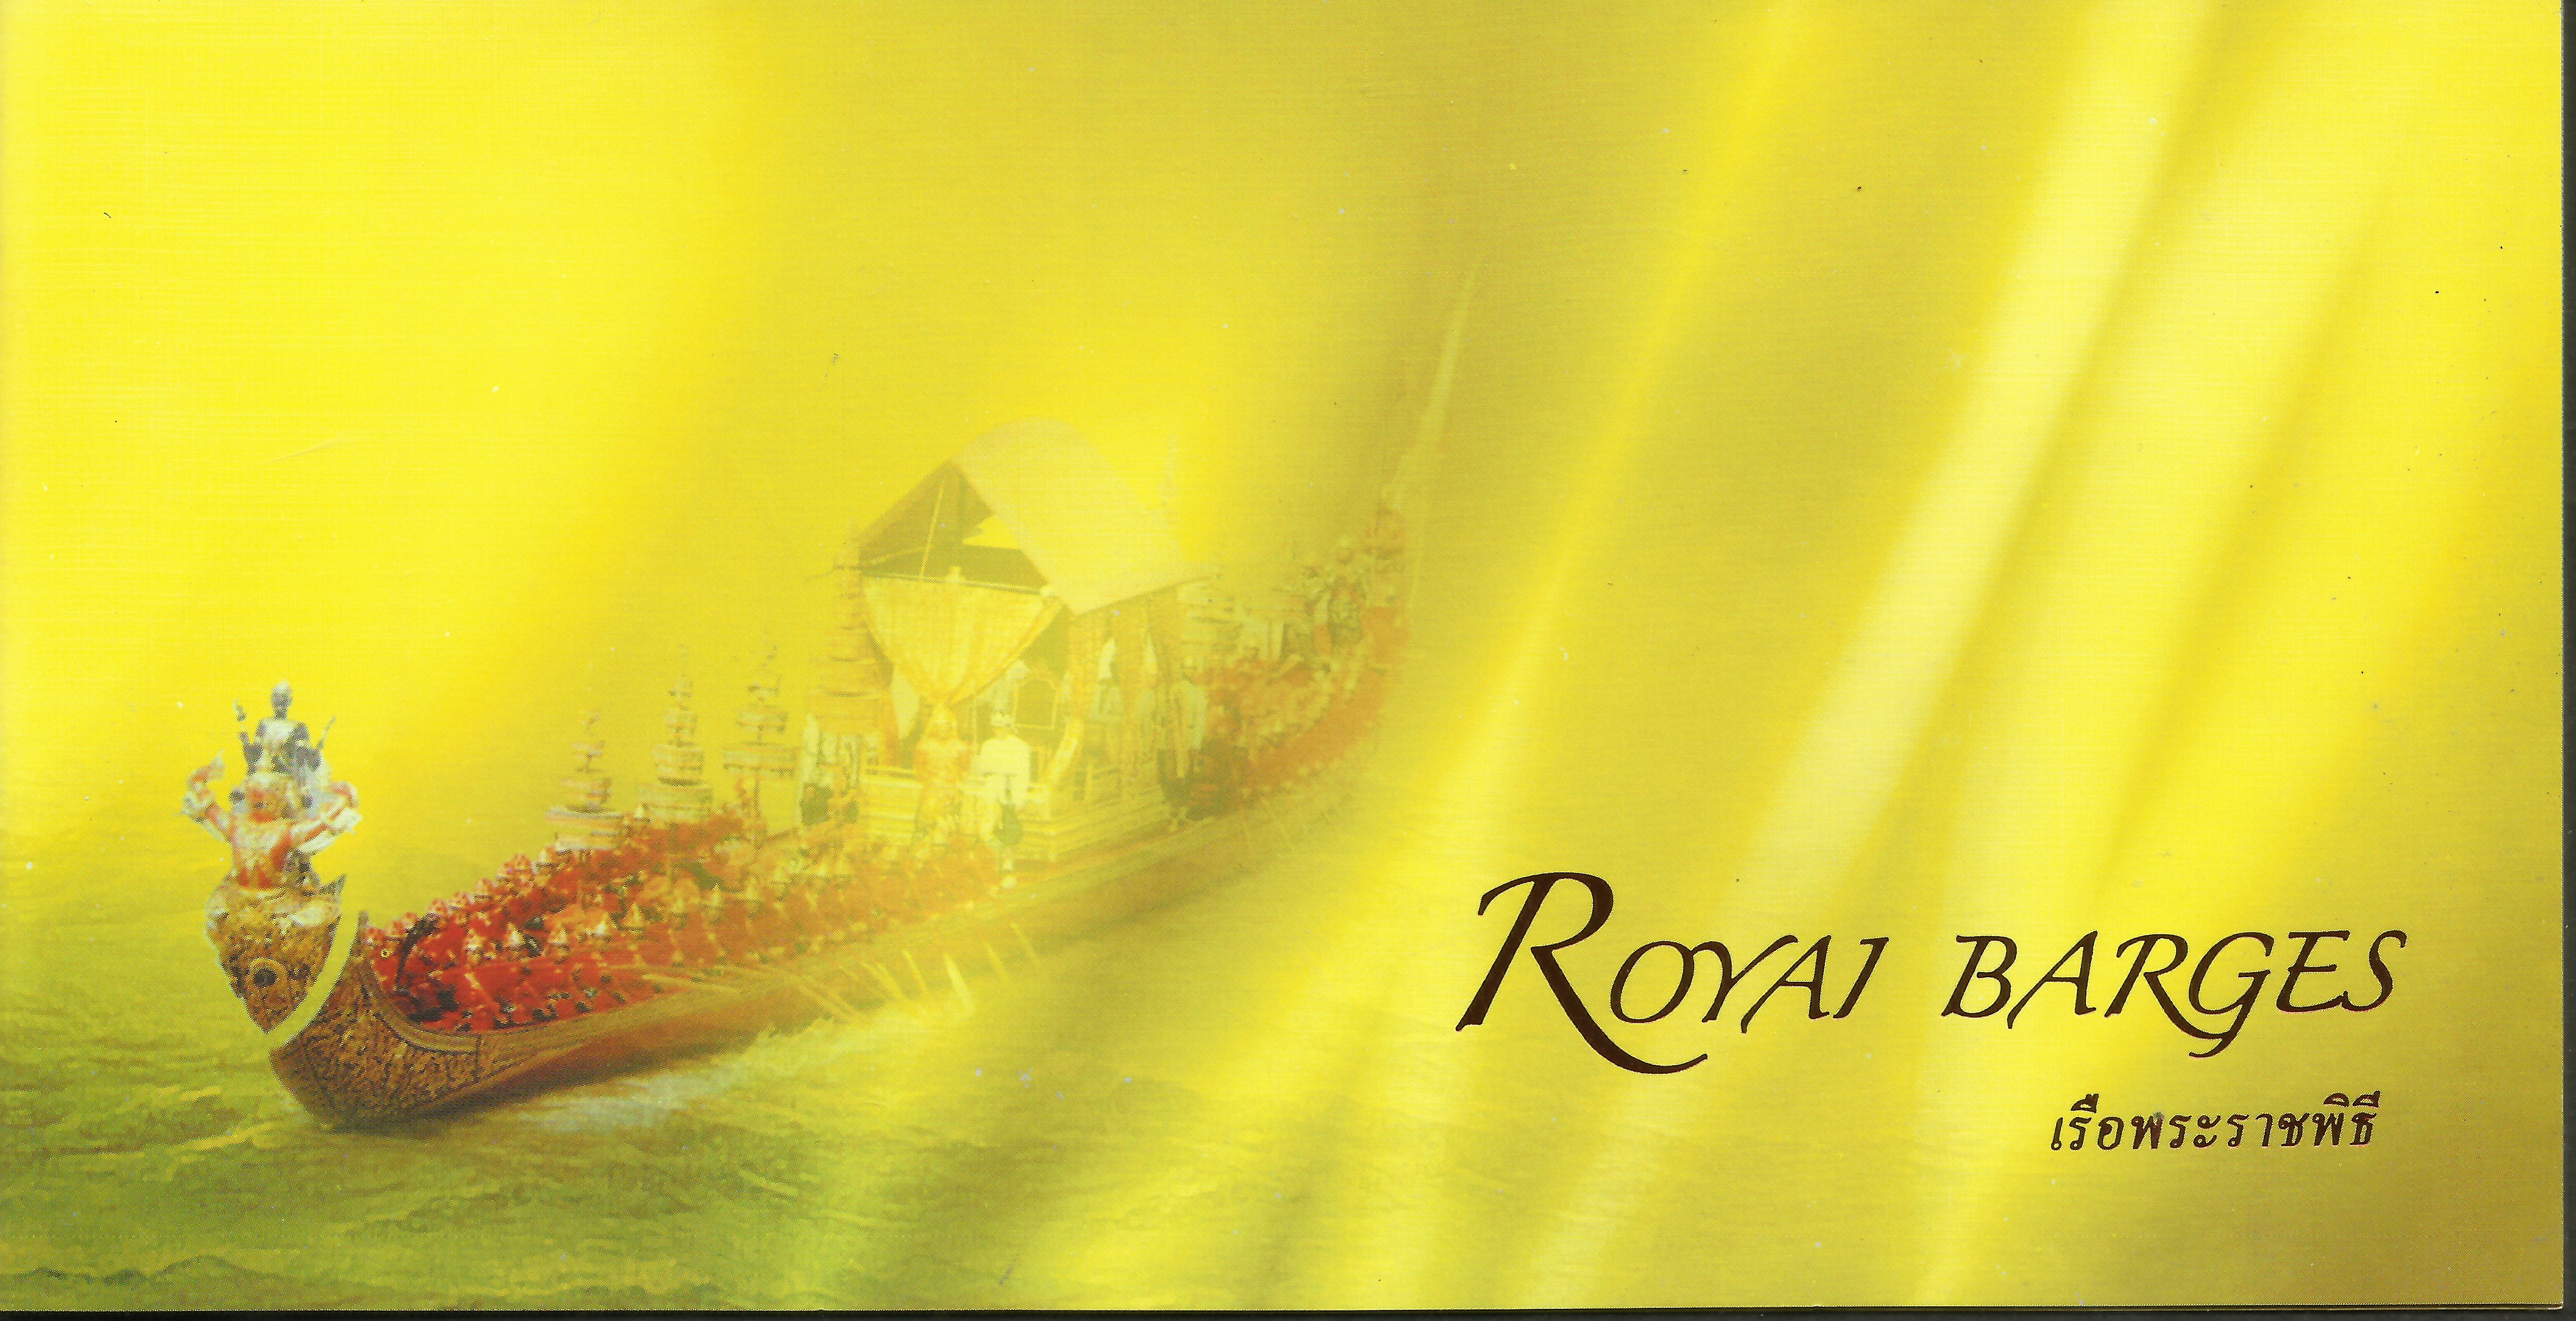 Royal Barges presentation pack produced by Thailand Post included copies of Scott #1692 and #1776.